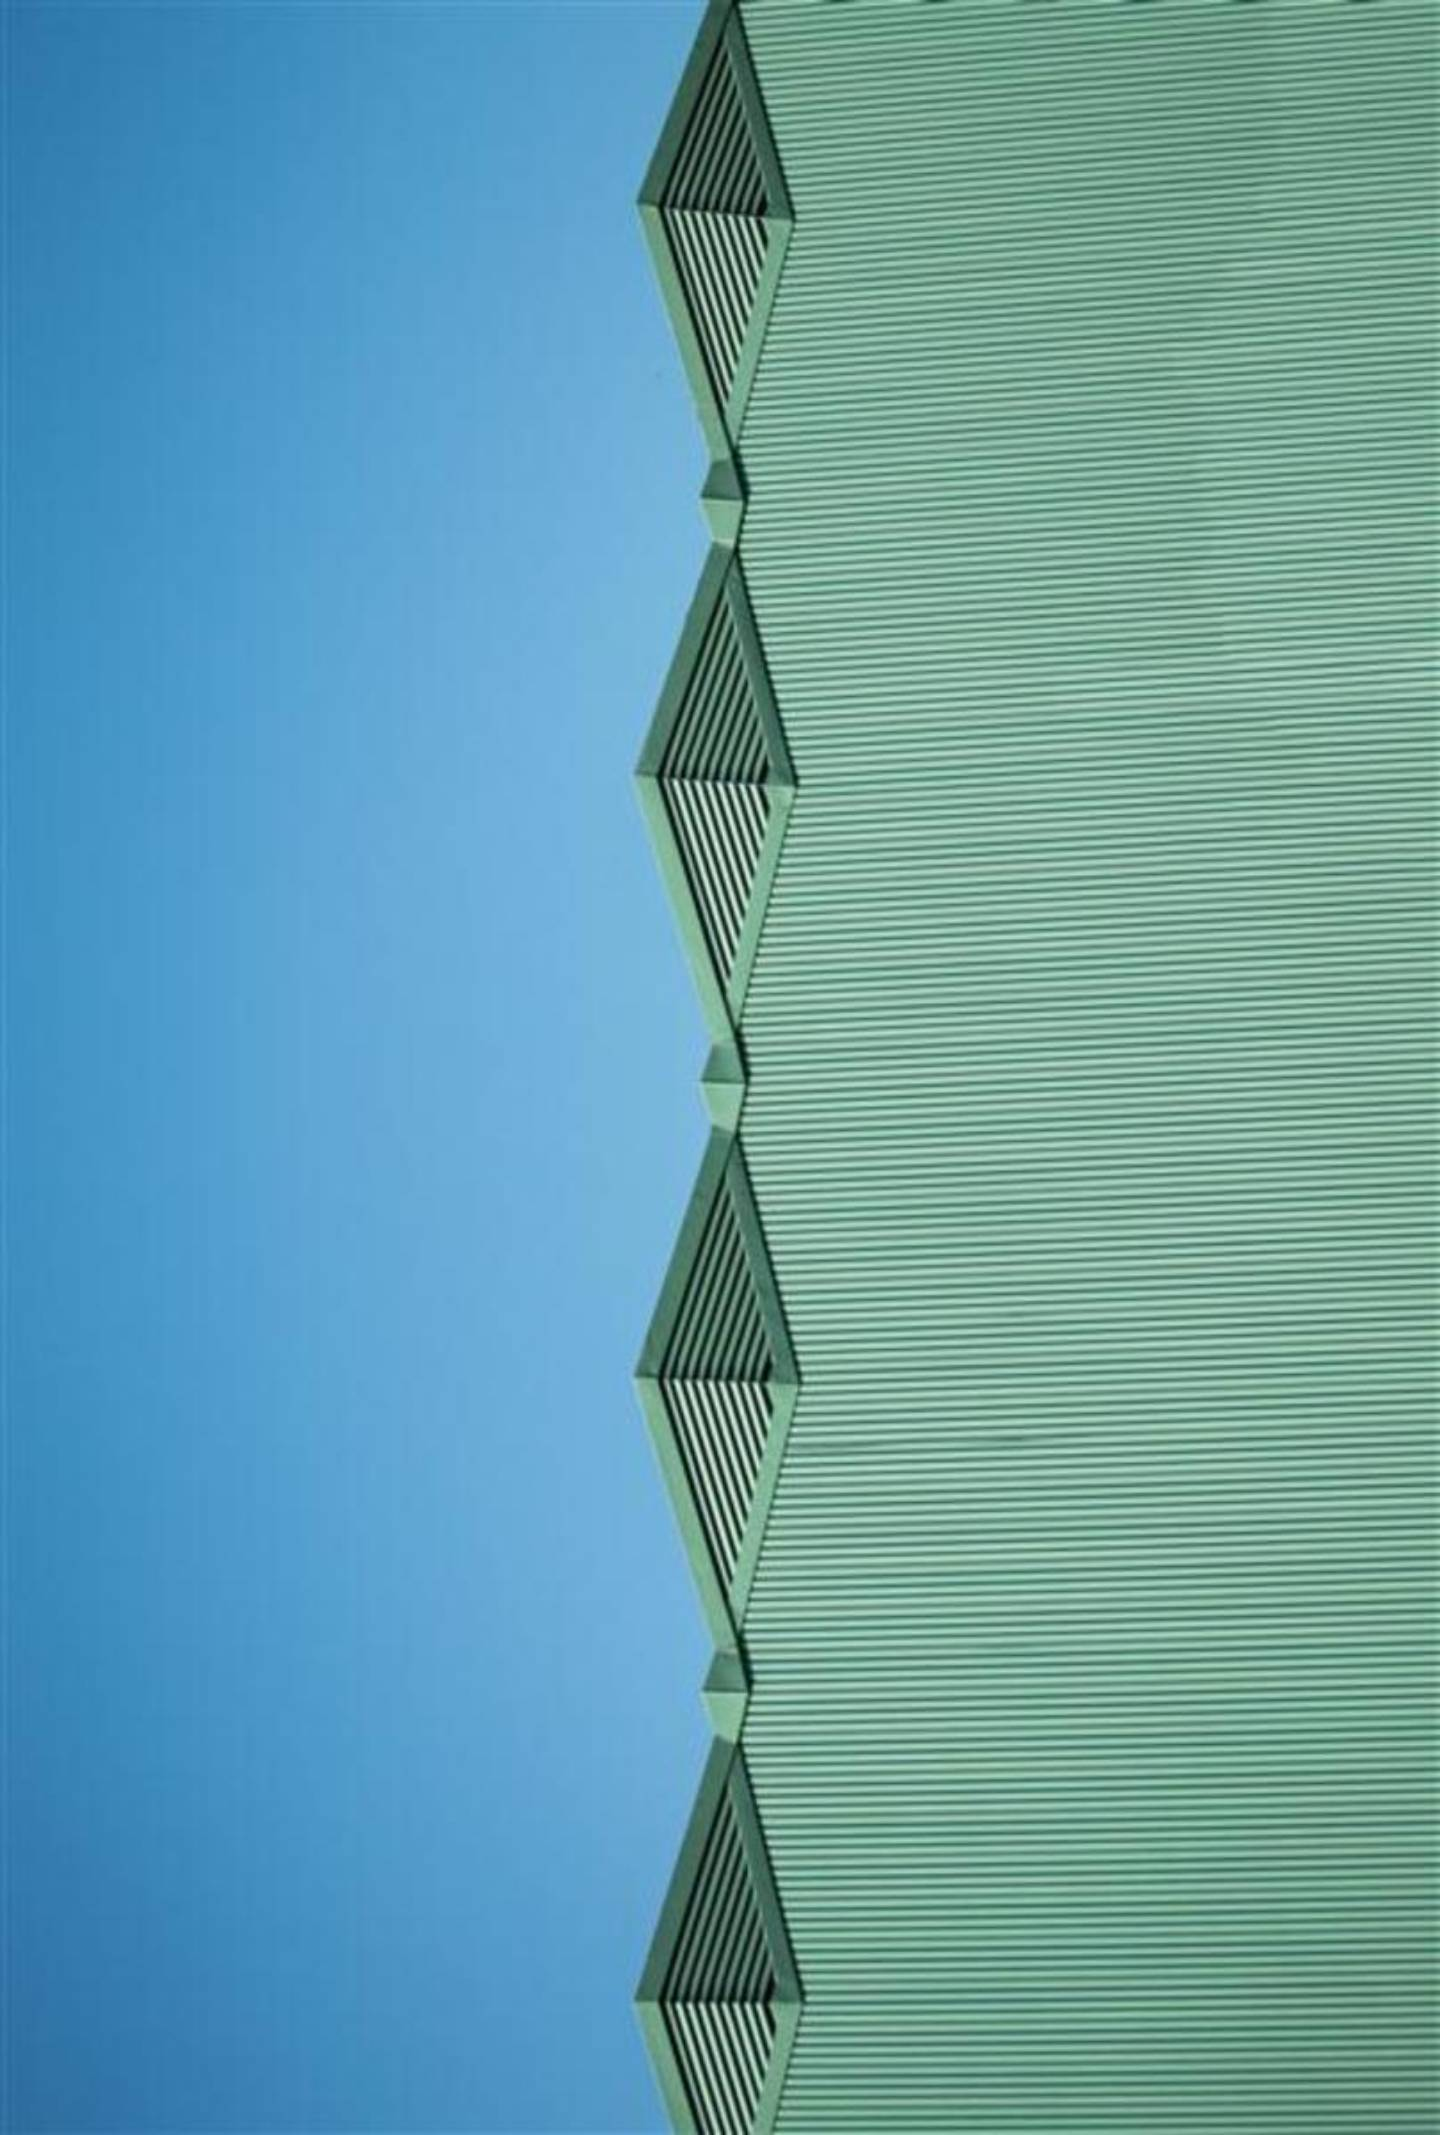 Blue Green Mile Nikola Olic Photo Architecture